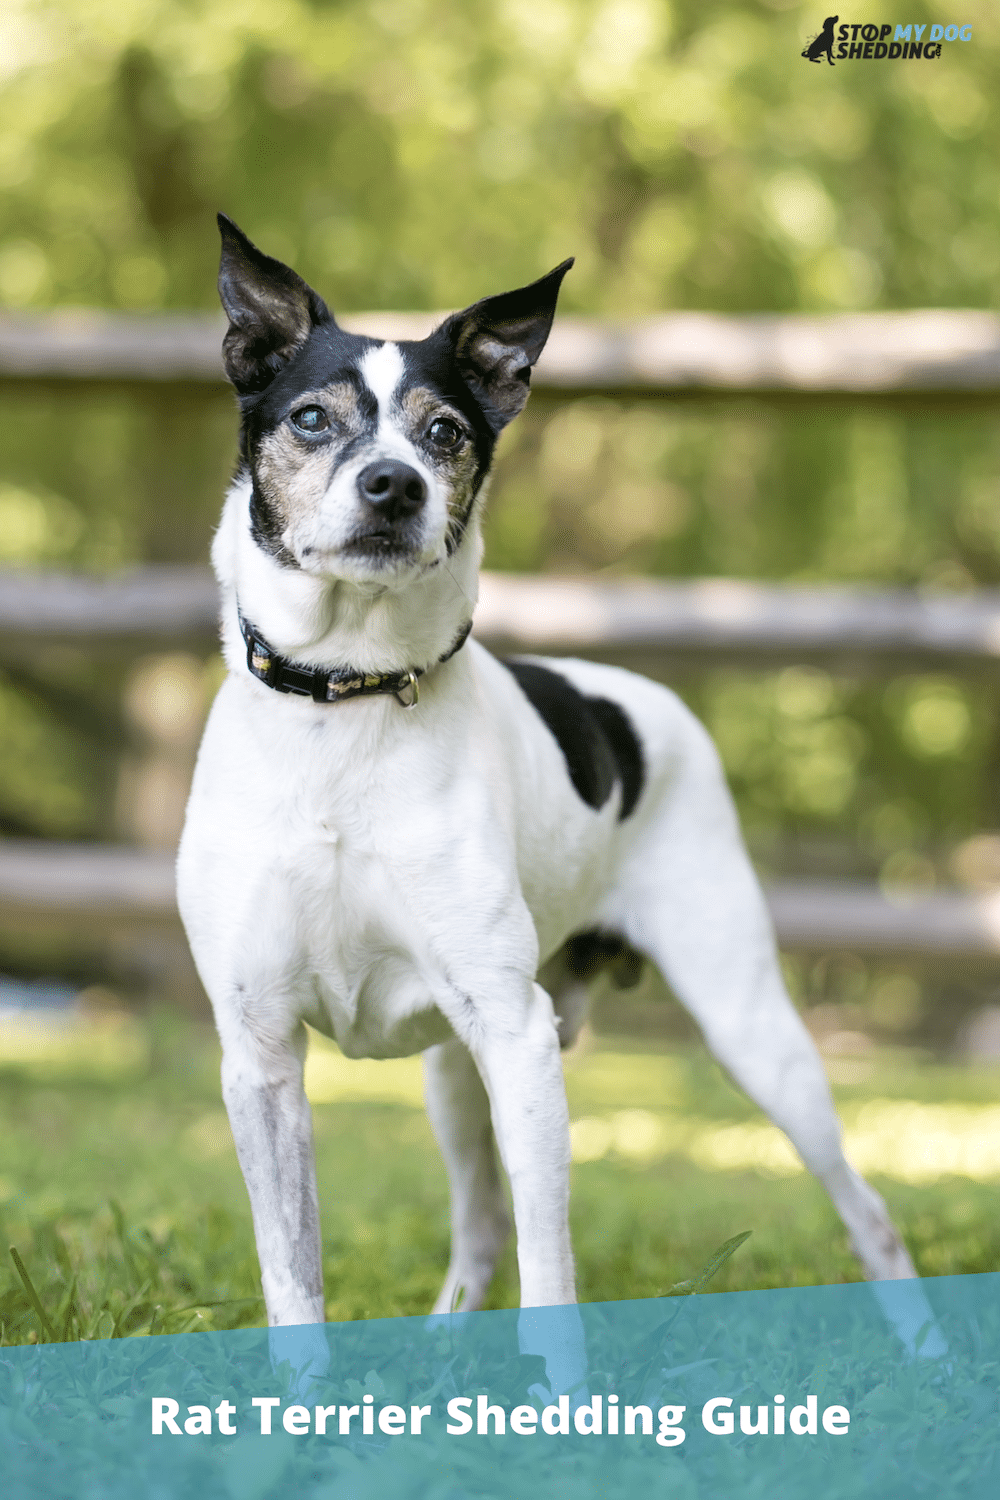 Do Rat Terriers Shed? (Shedding and Grooming Guide)